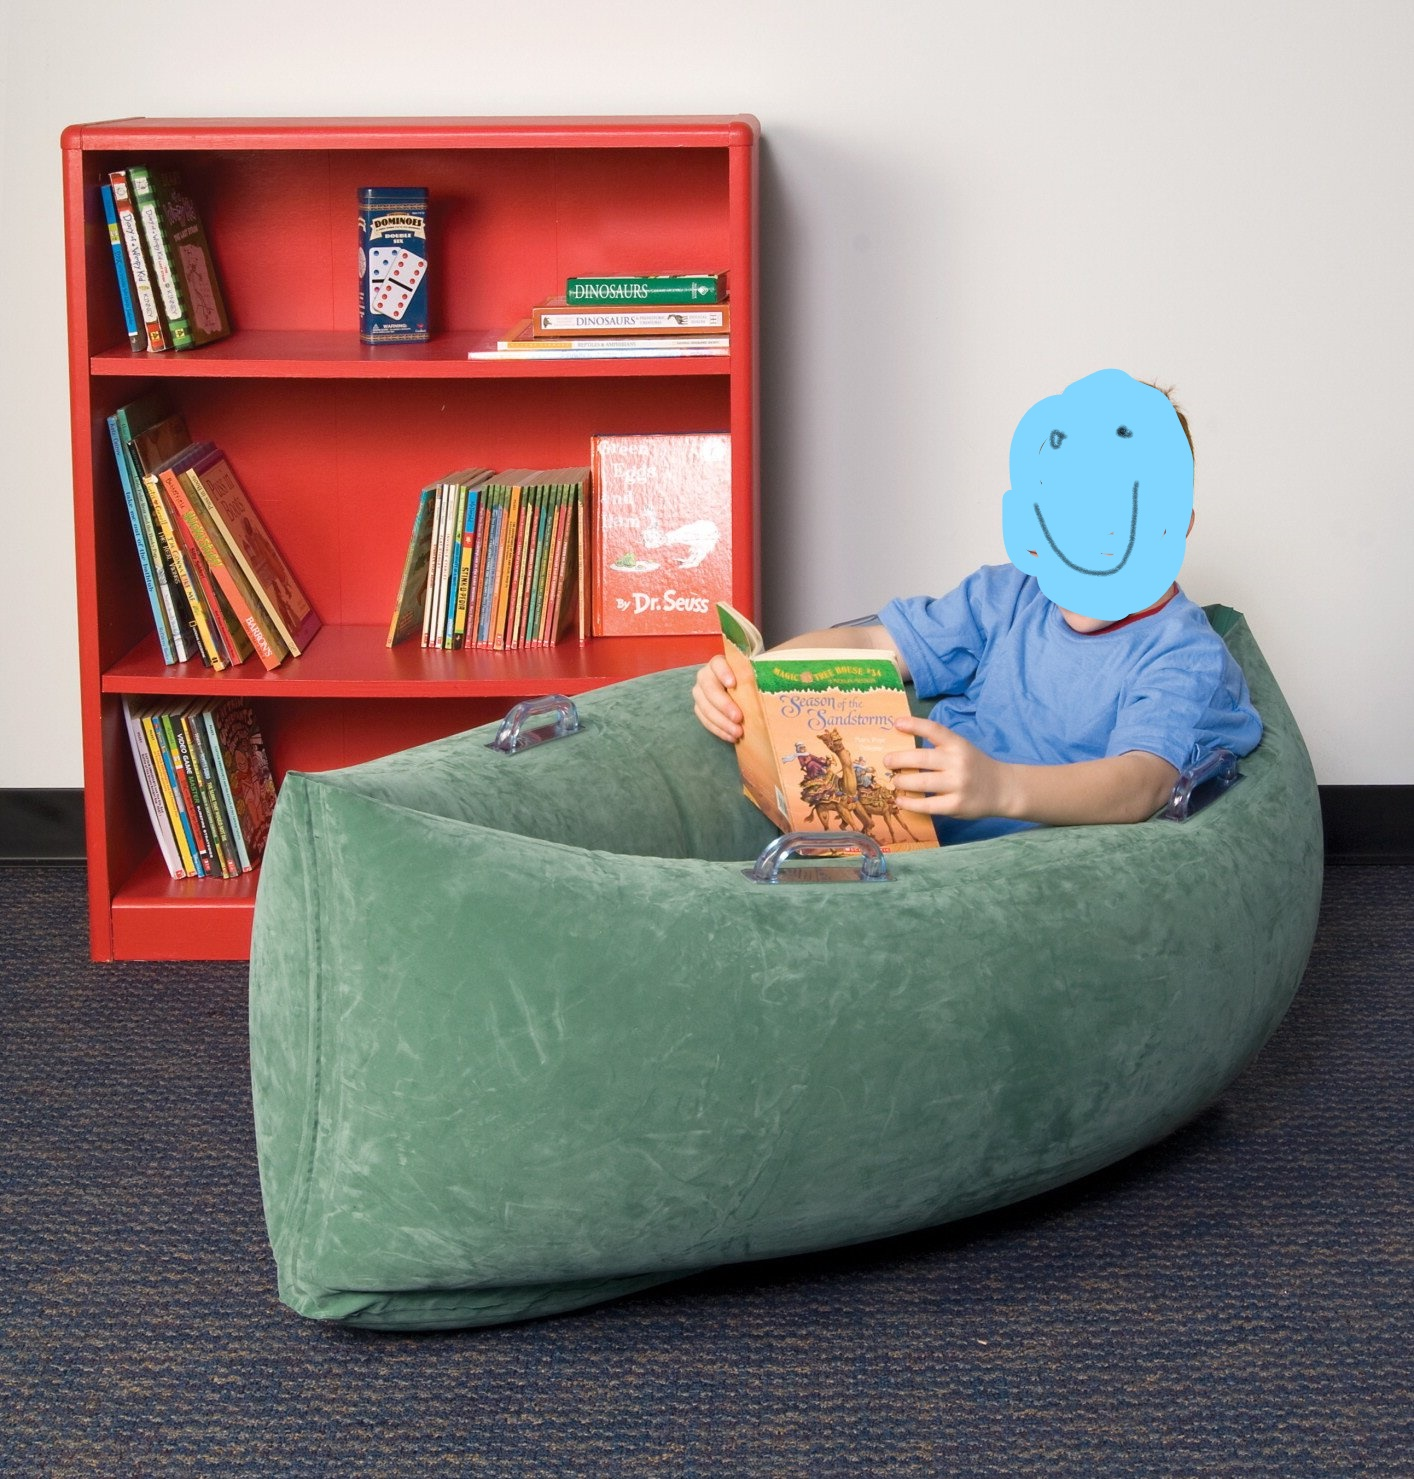 Inkedpeapod_inflatable_self_calming_station_LIedit.jpg